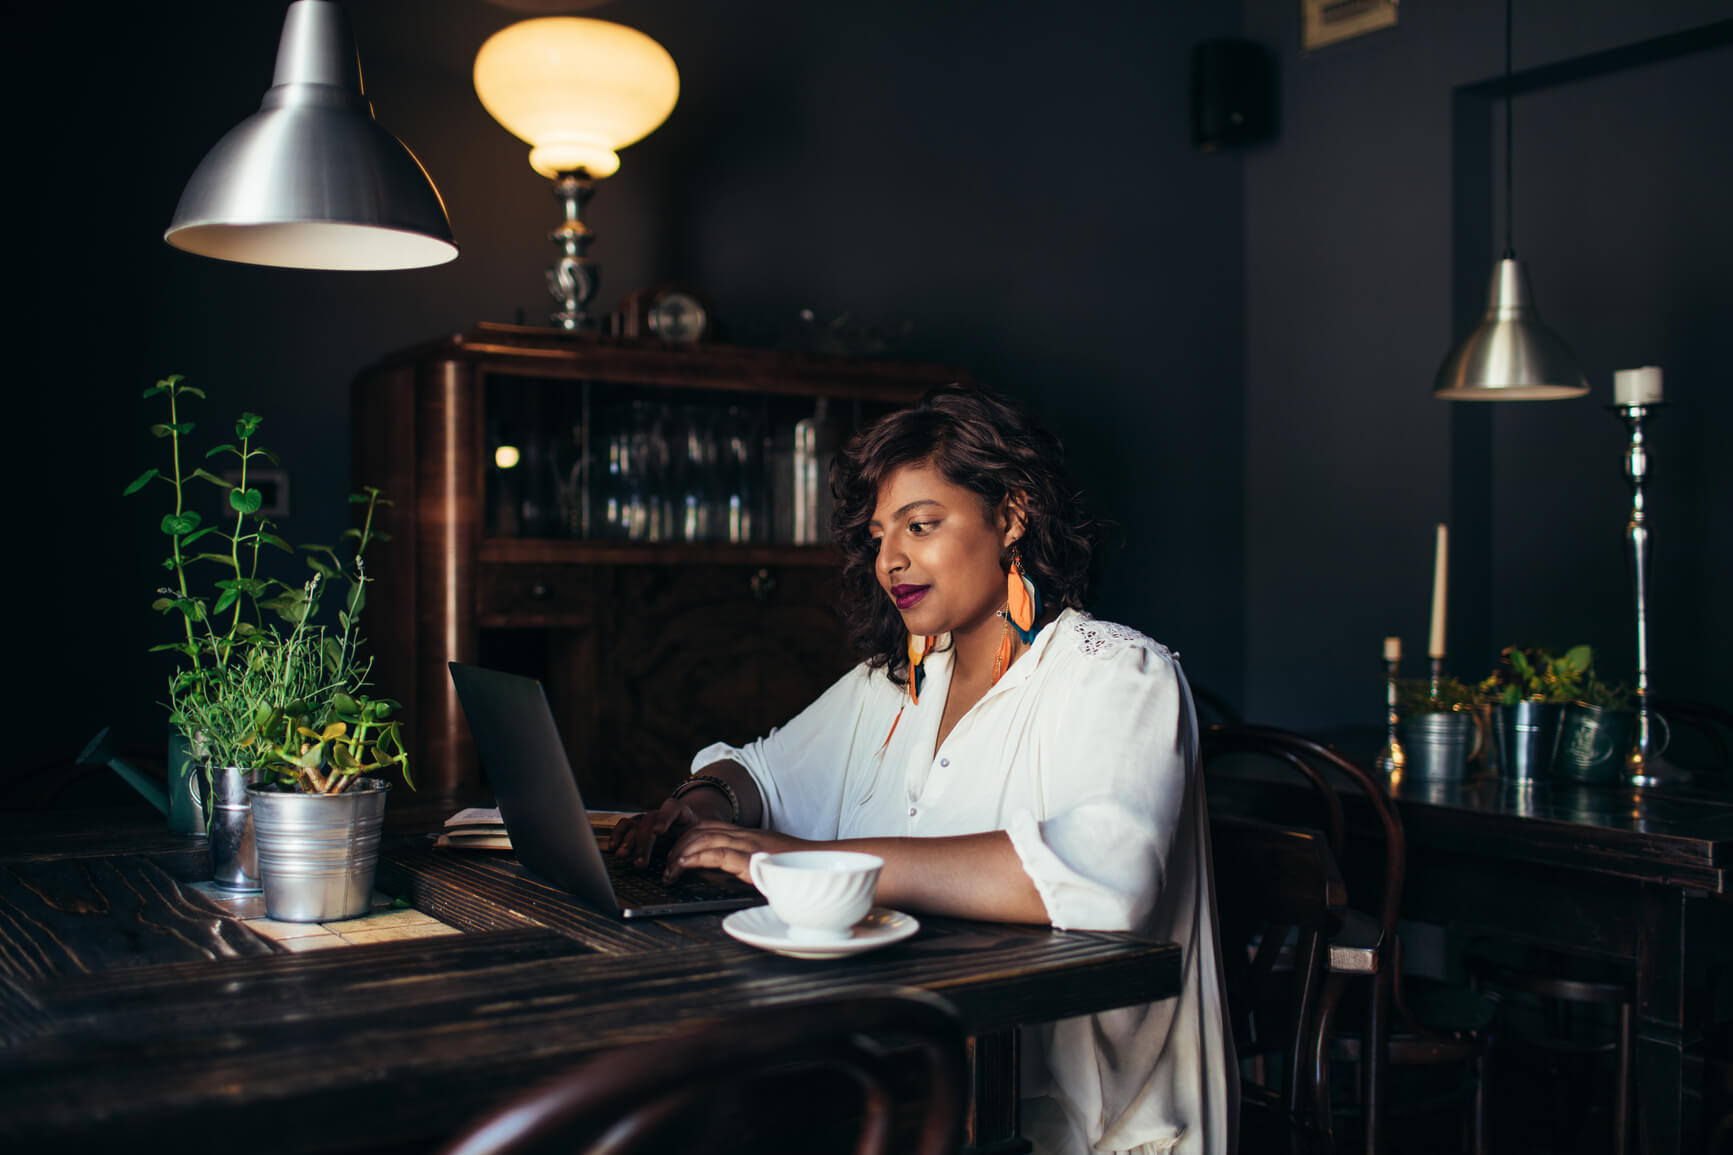 woman sitting alone at a table drinking coffee and working on a laptop